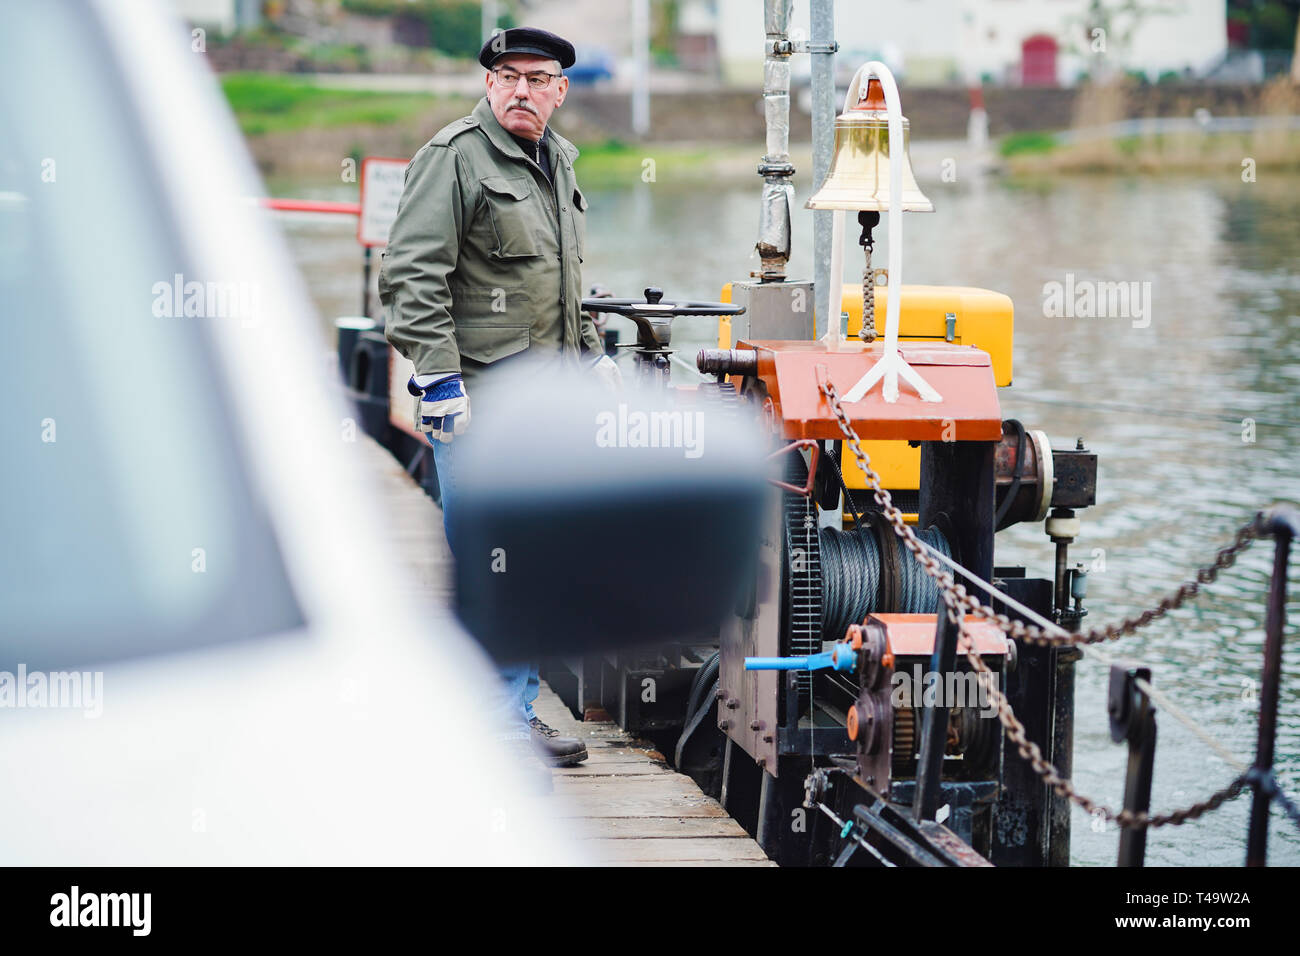 08 April 2019, Baden-Wuerttemberg, Neckargemünd: Ferryman Achim Landwehr stands on the ferry across the Neckar between Neckarhausen and Neckarhäuserhof. (to dpa: 'Ferryman between the federal states - young talent worries solved' of 15.04.2019) Photo: Uwe Anspach/dpa - Stock Image